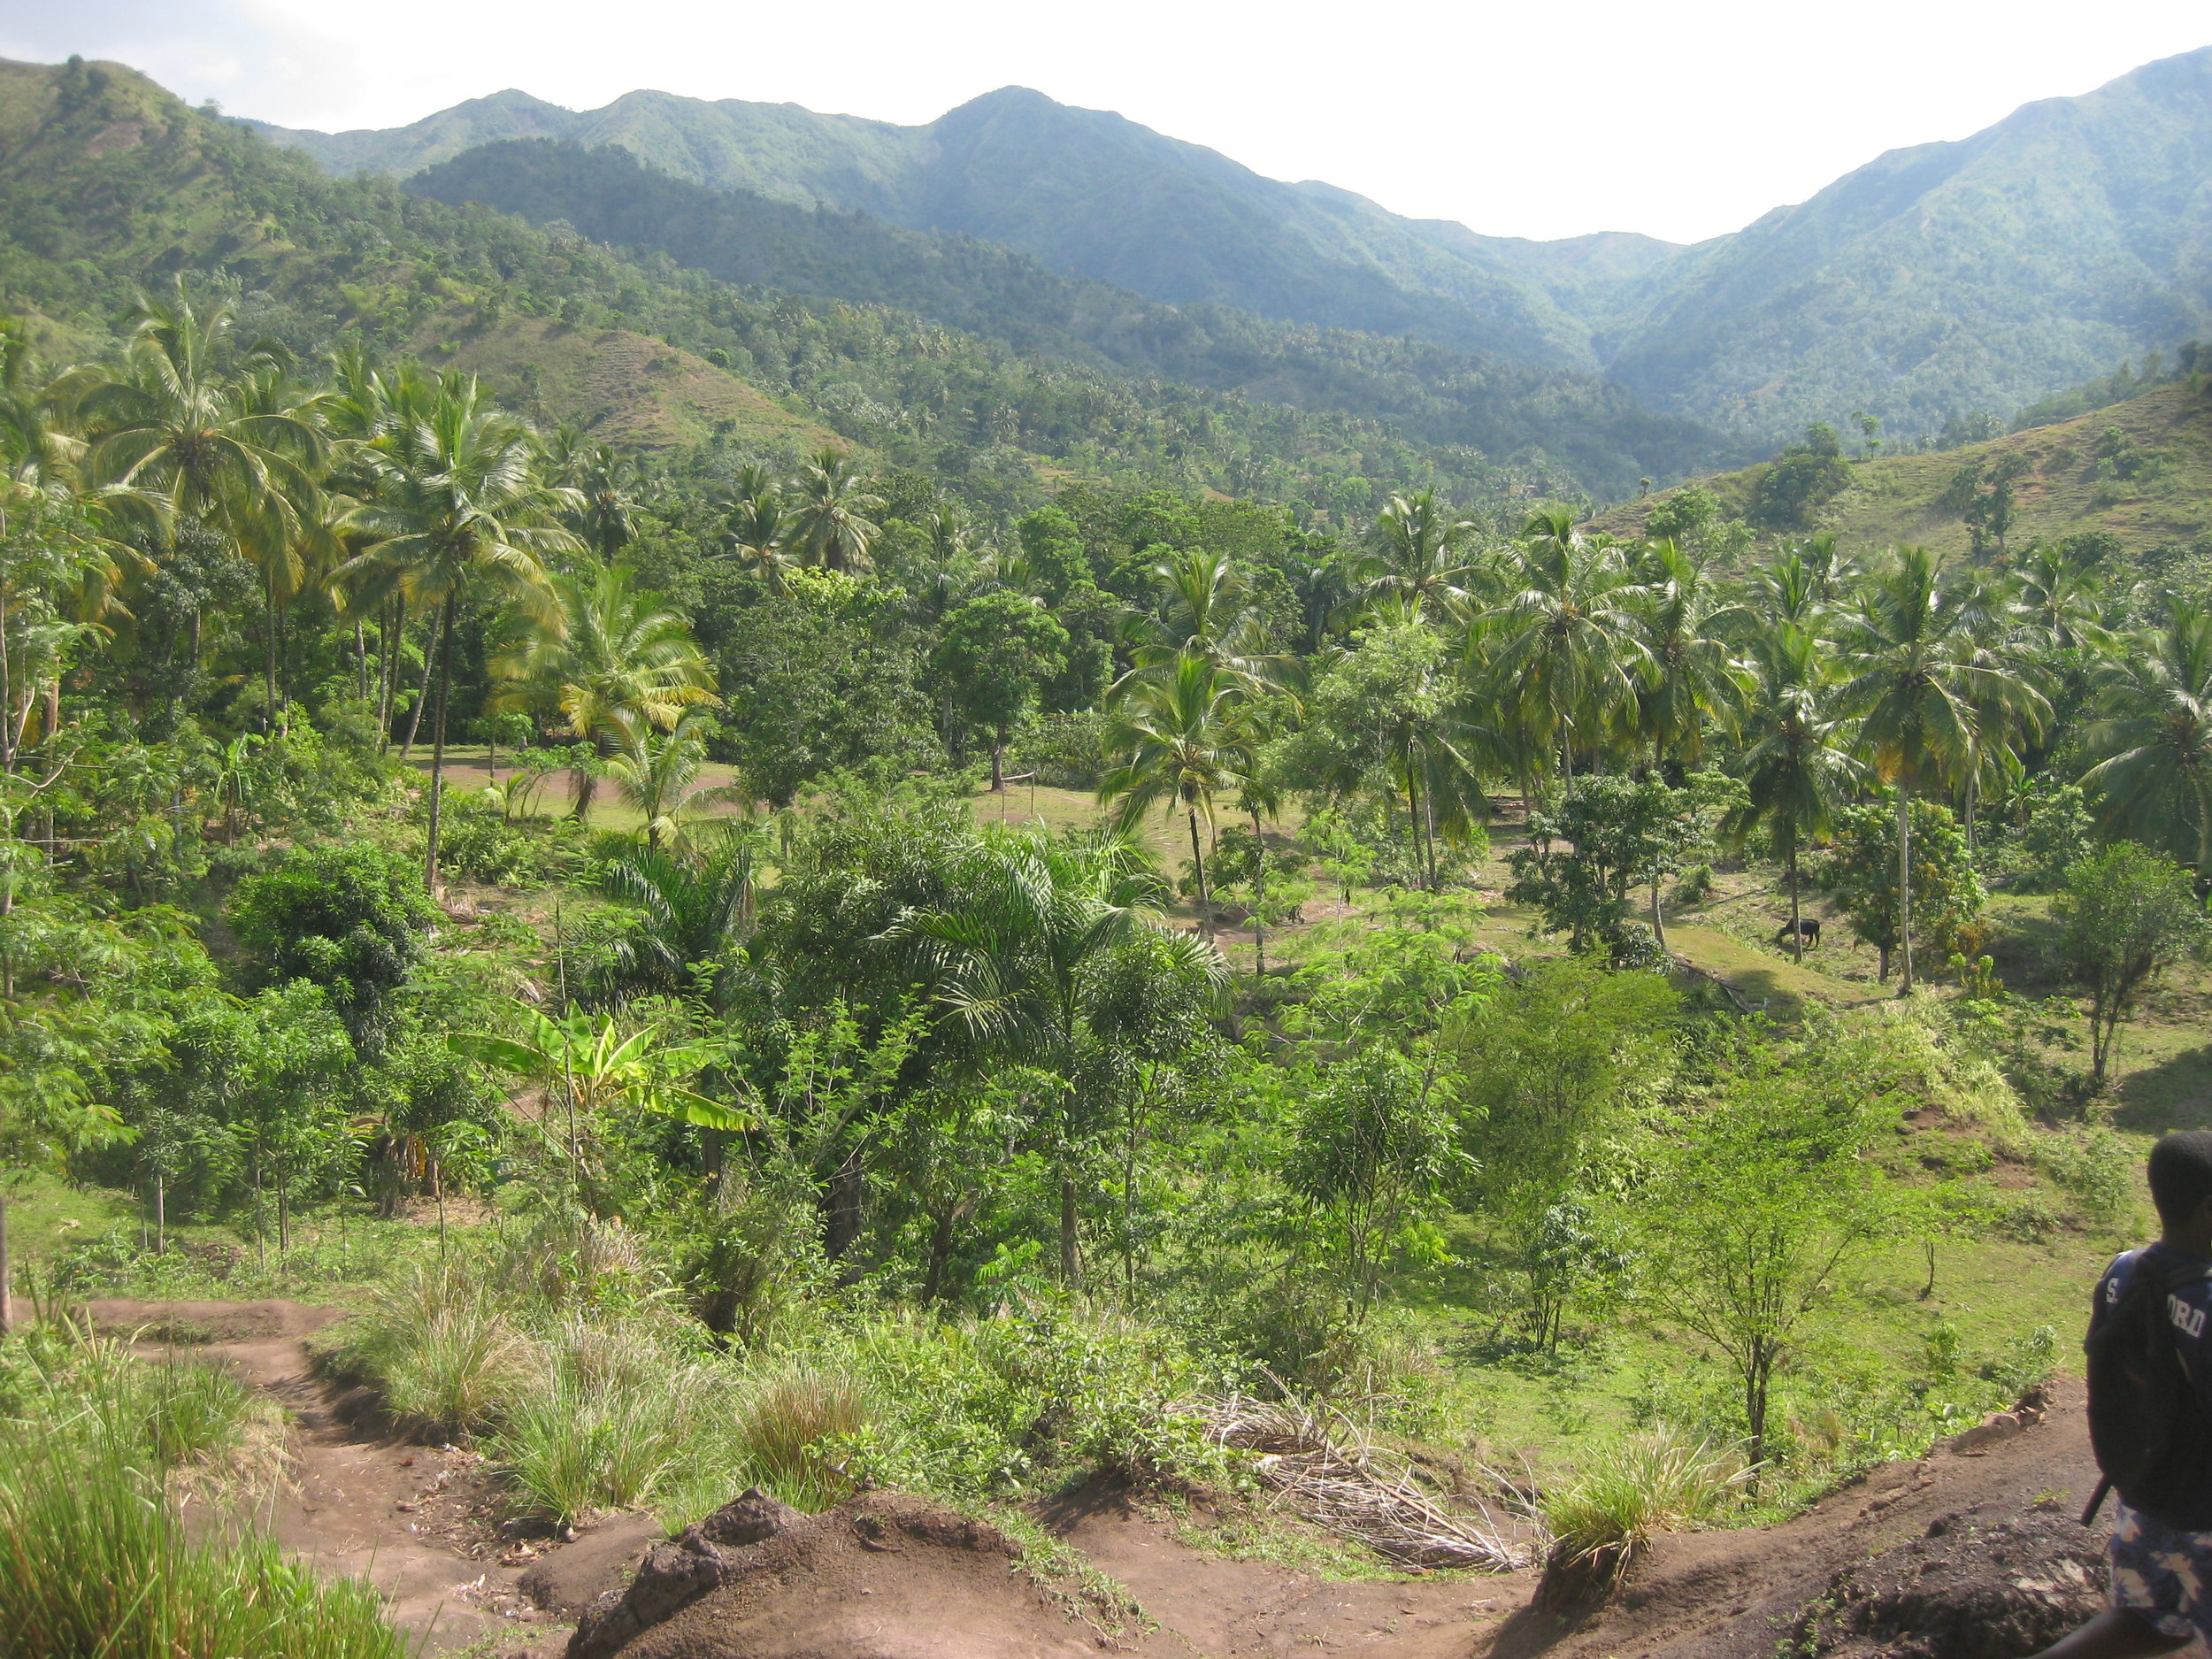 Mountains and local agriculture near Soufriere.